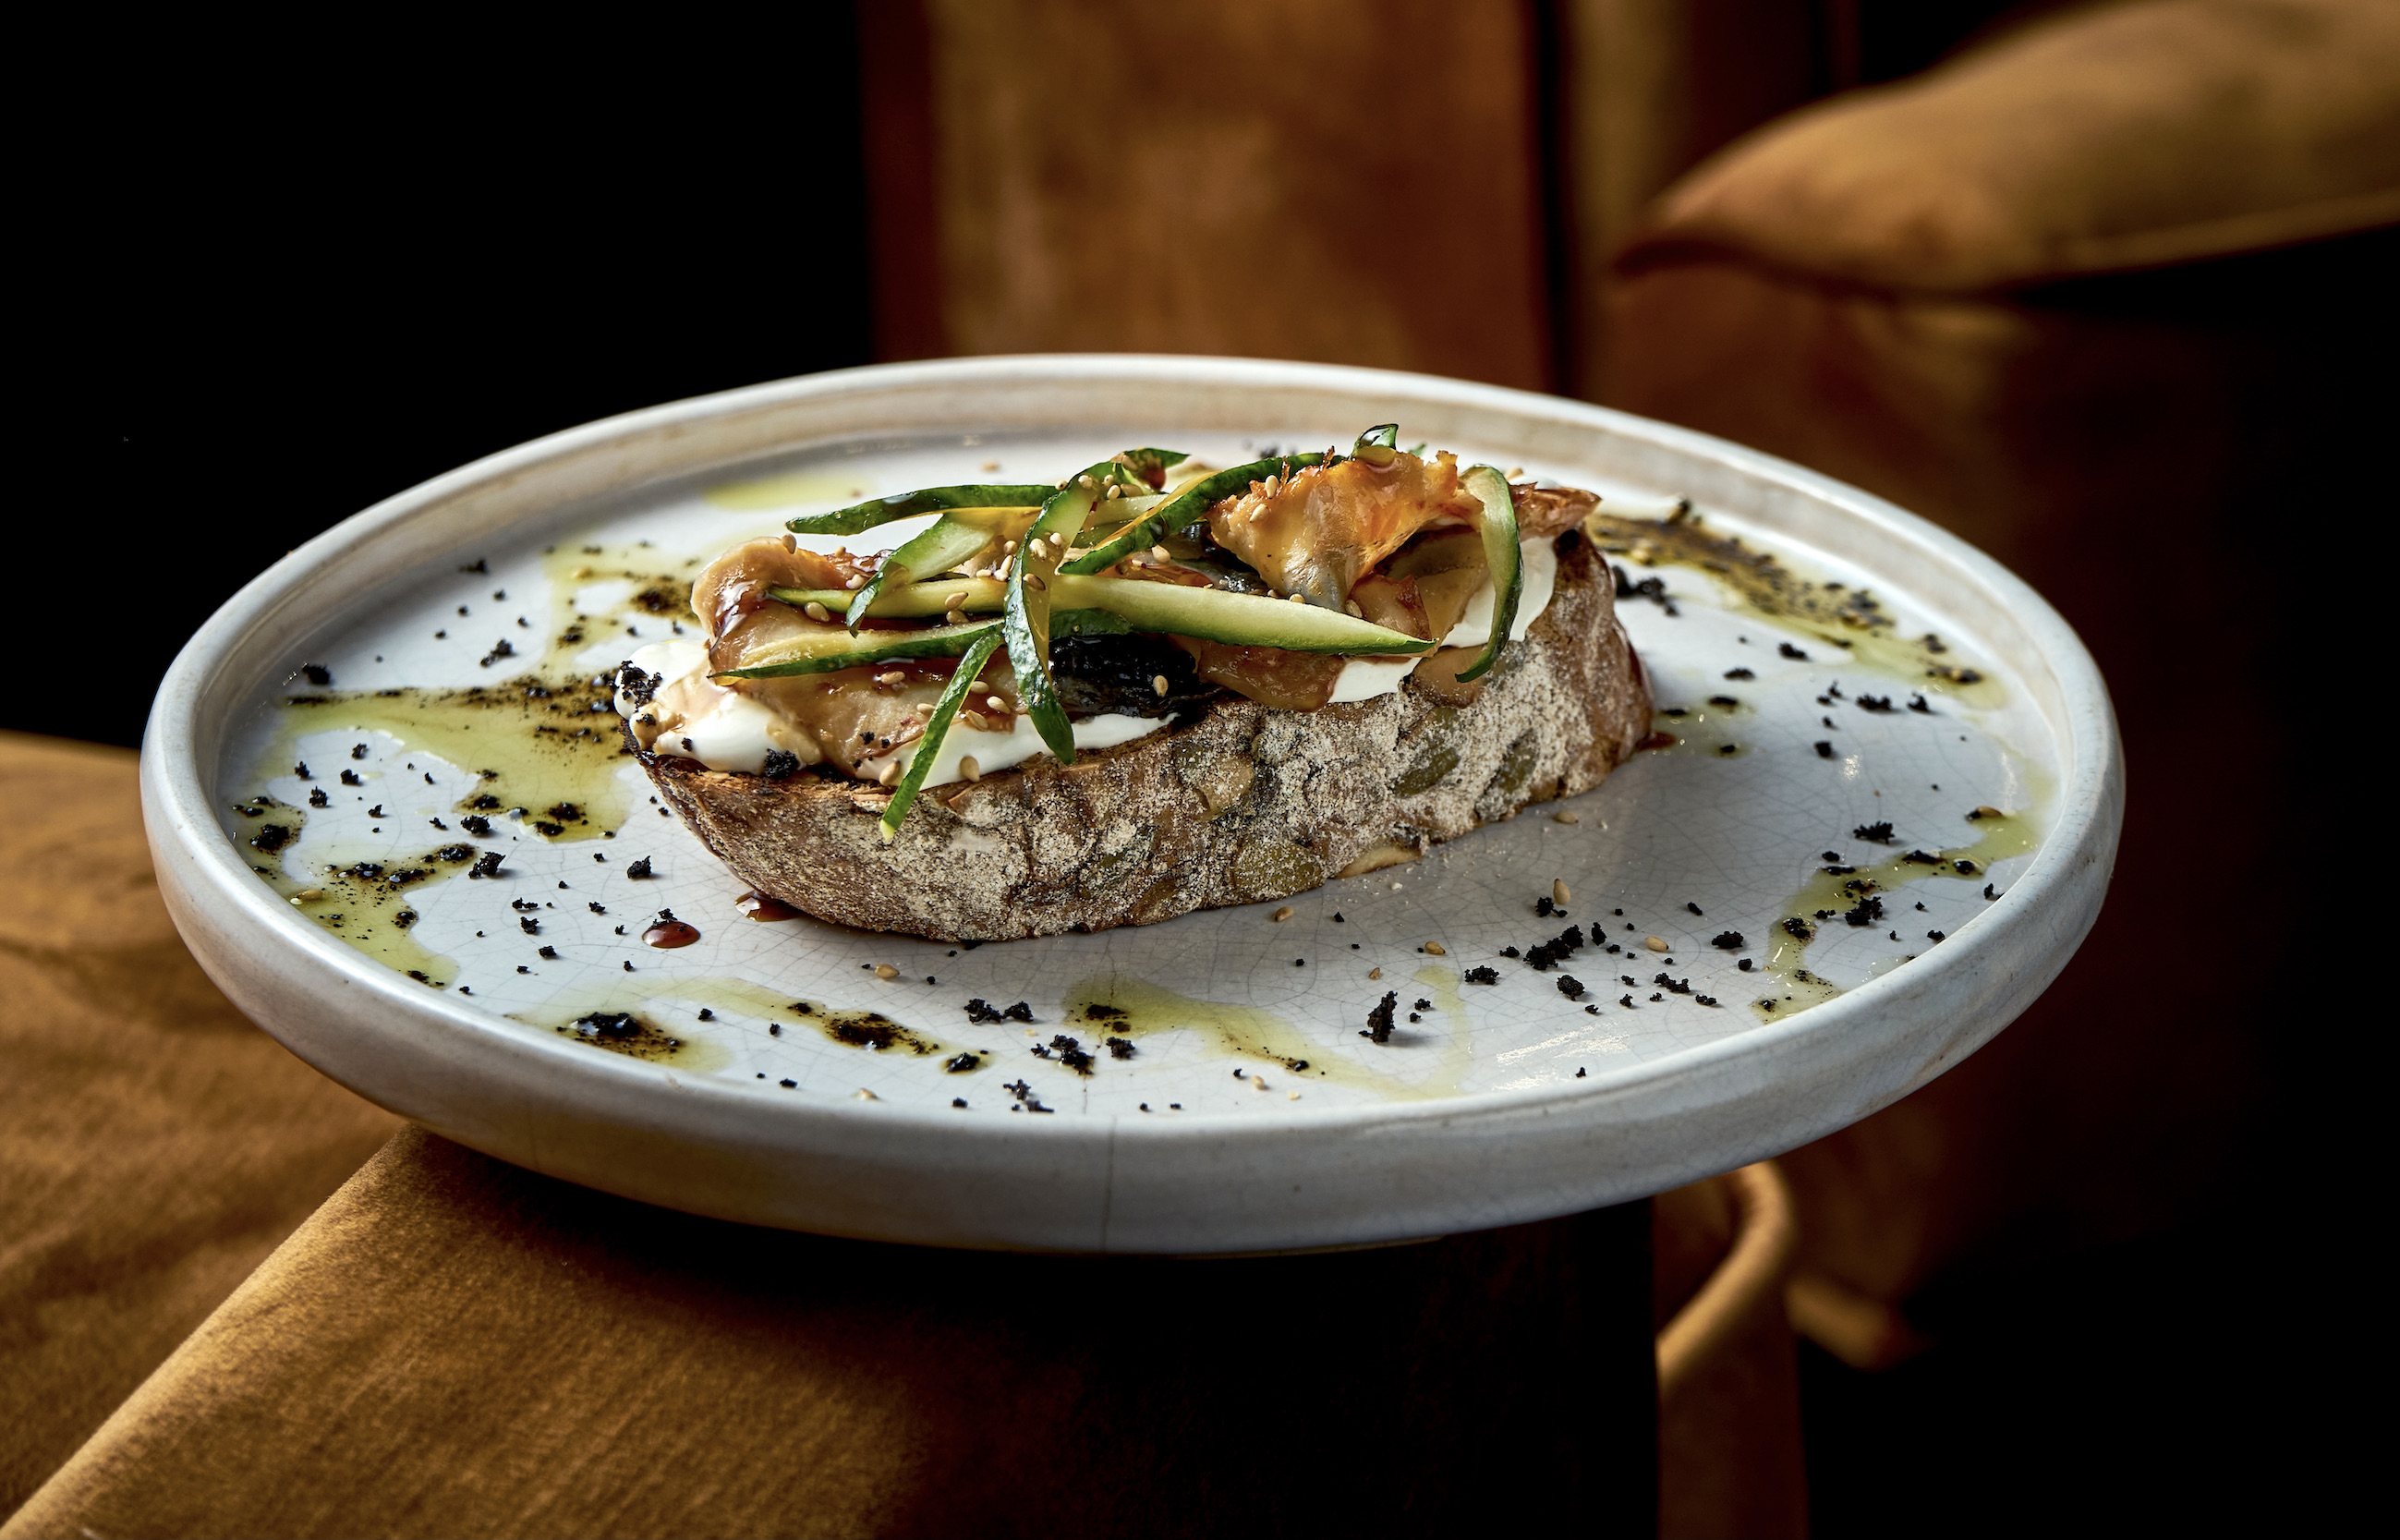 bruschetta-with-eel-cucumber-and-cream-cheese-on-rye-bread-served-in-white-plate-restaurant-food-view-from-above-italian-cuisine 3